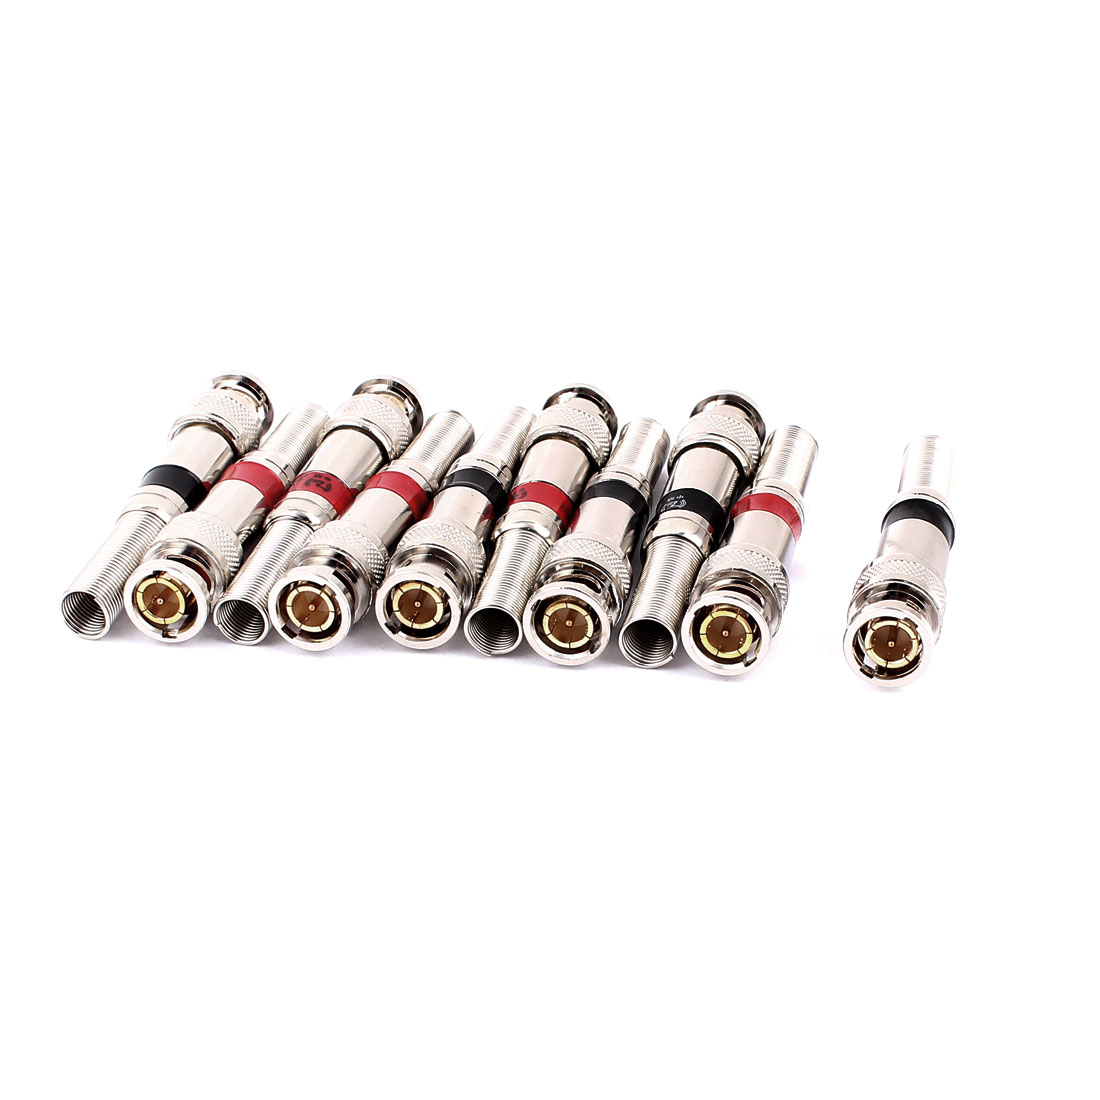 10pcs Metal Welding Spring End Coax BNC Male Plug RF Coupler Connector for Camera CCTV